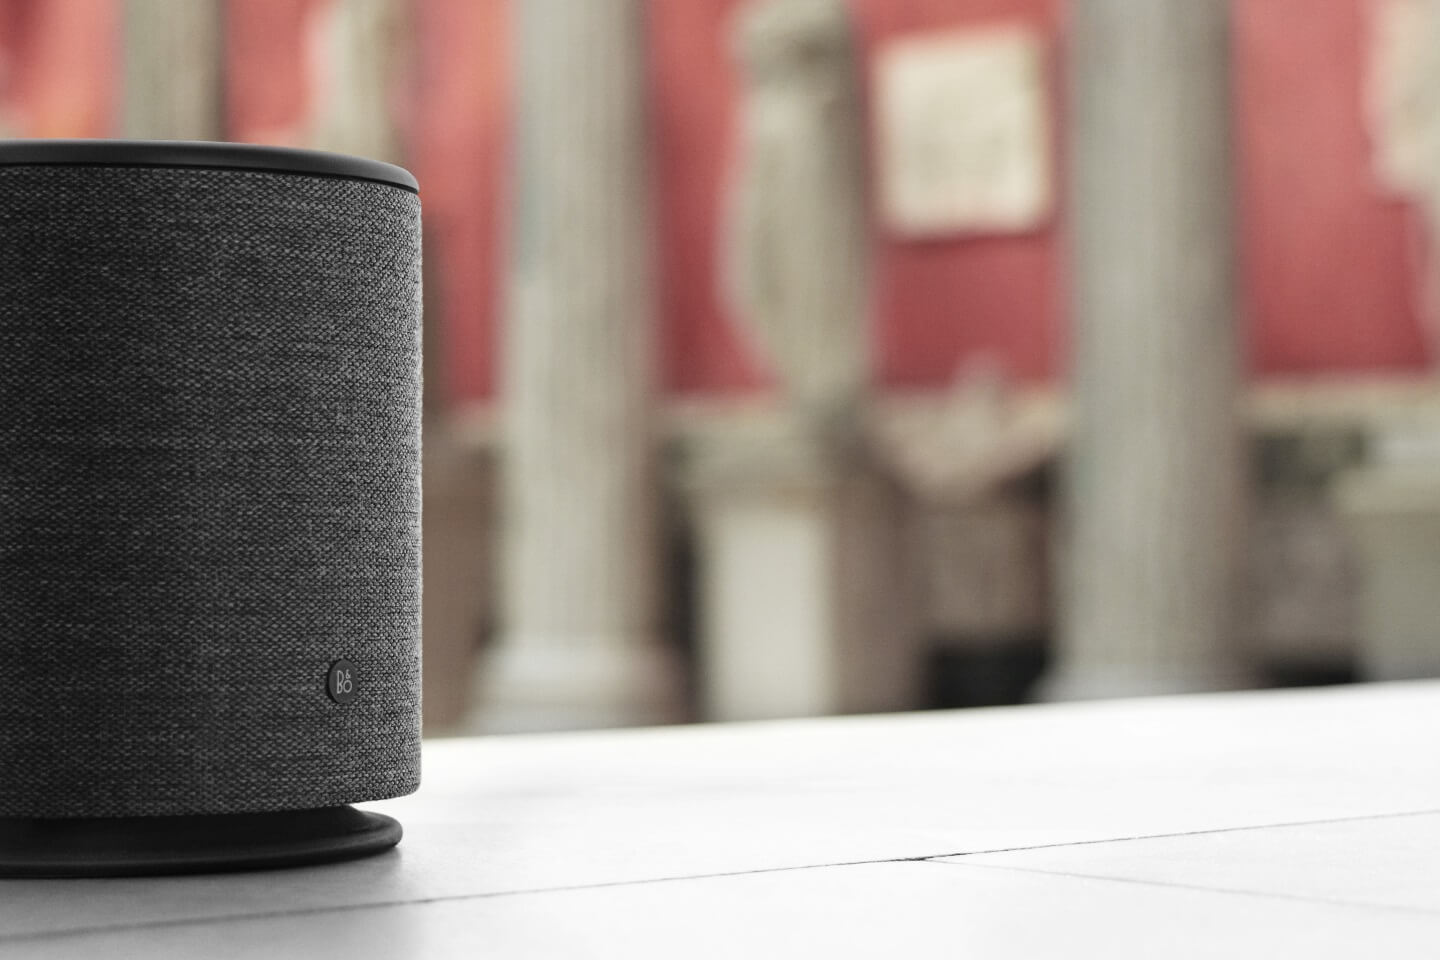 BeoPlay M5 Chromecast built-in